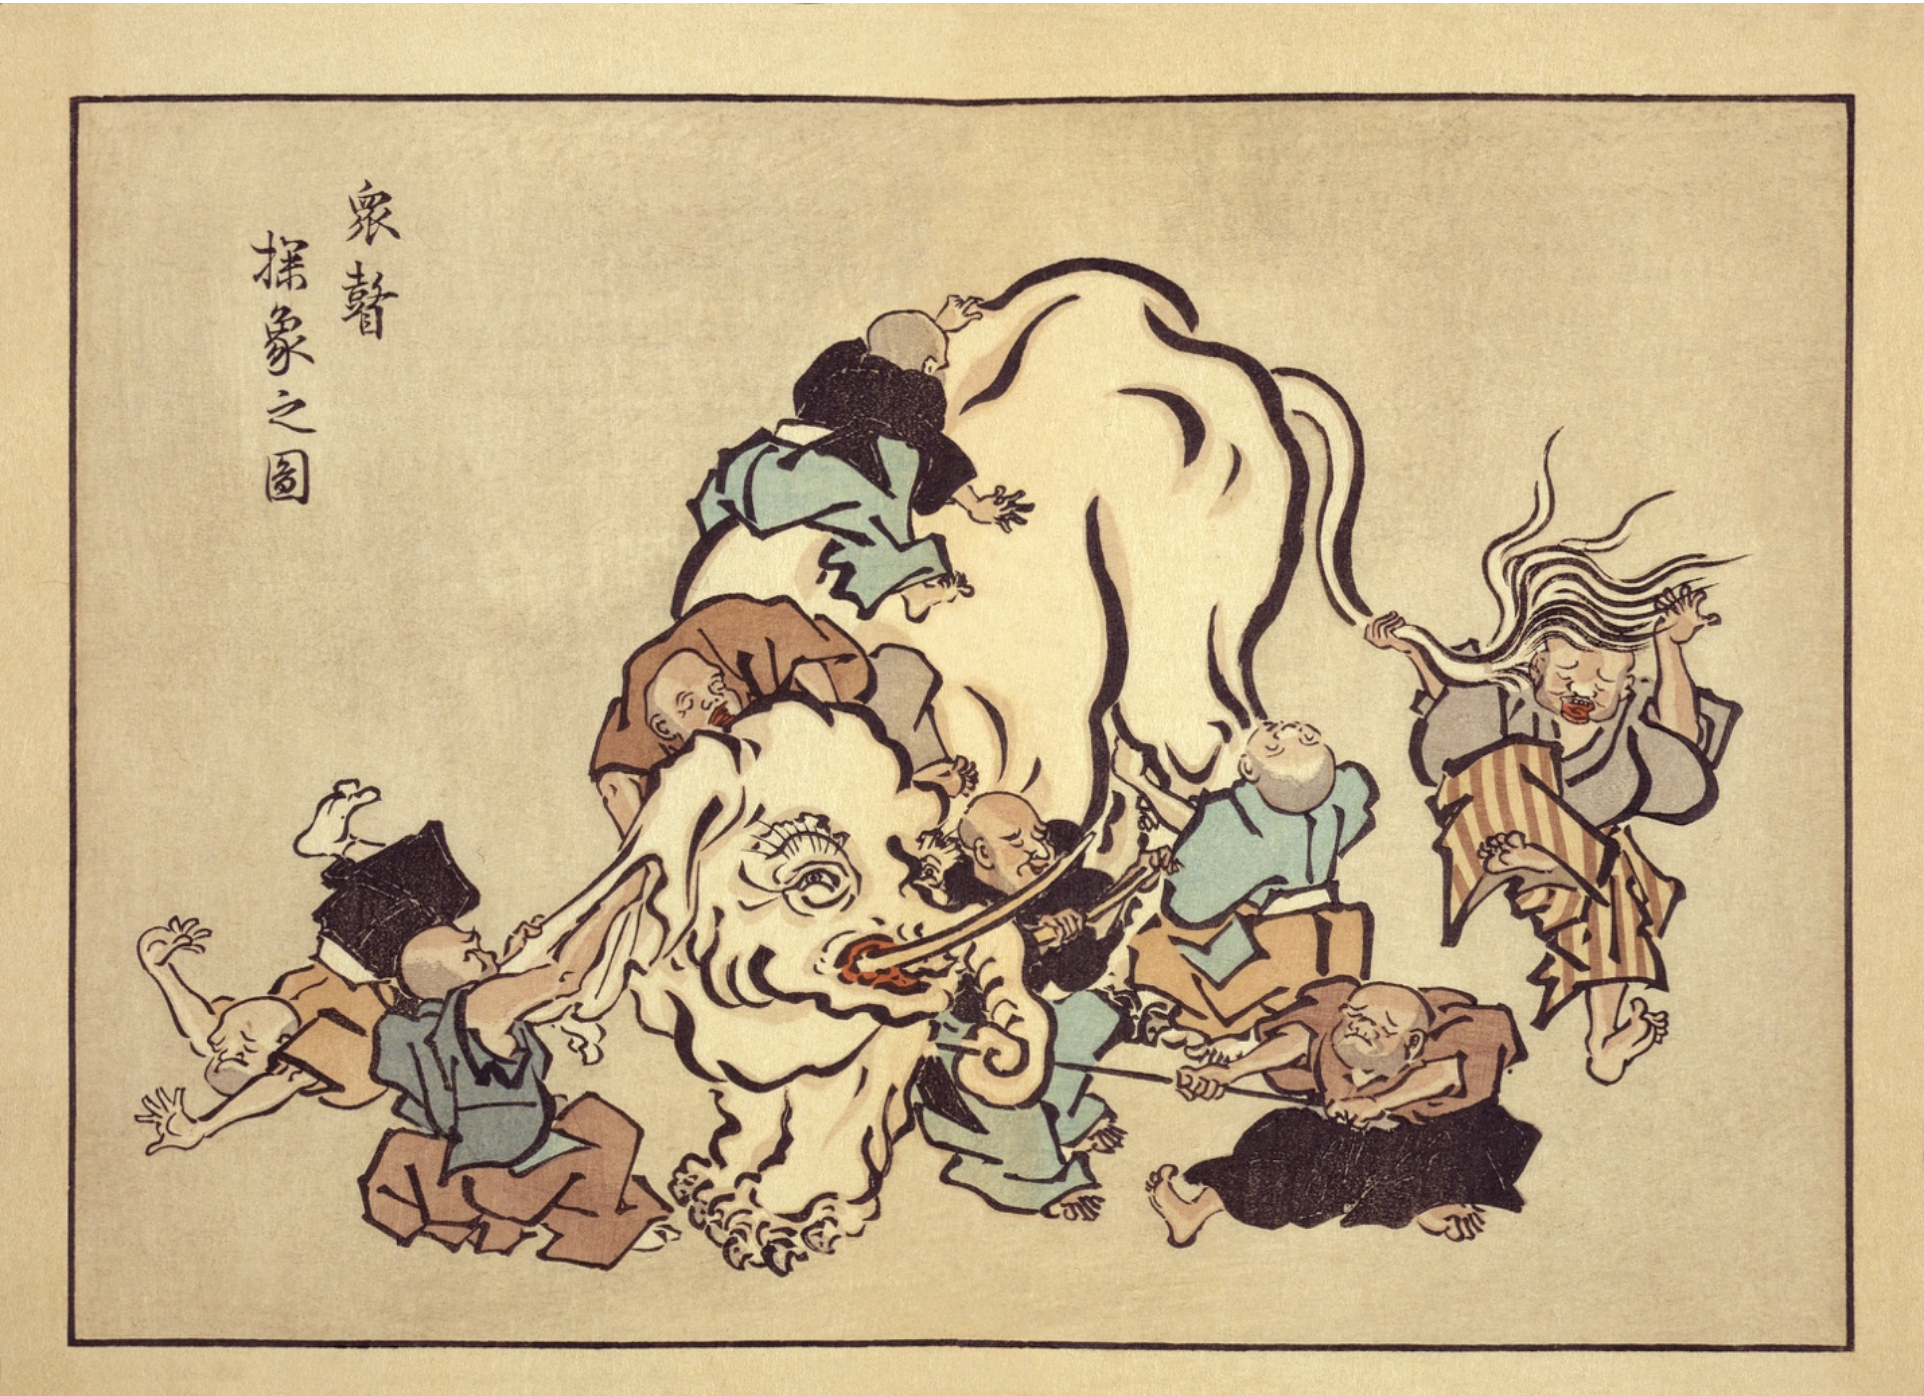 Hanabusa Itchō's rendering of blind monks examining an elephant.